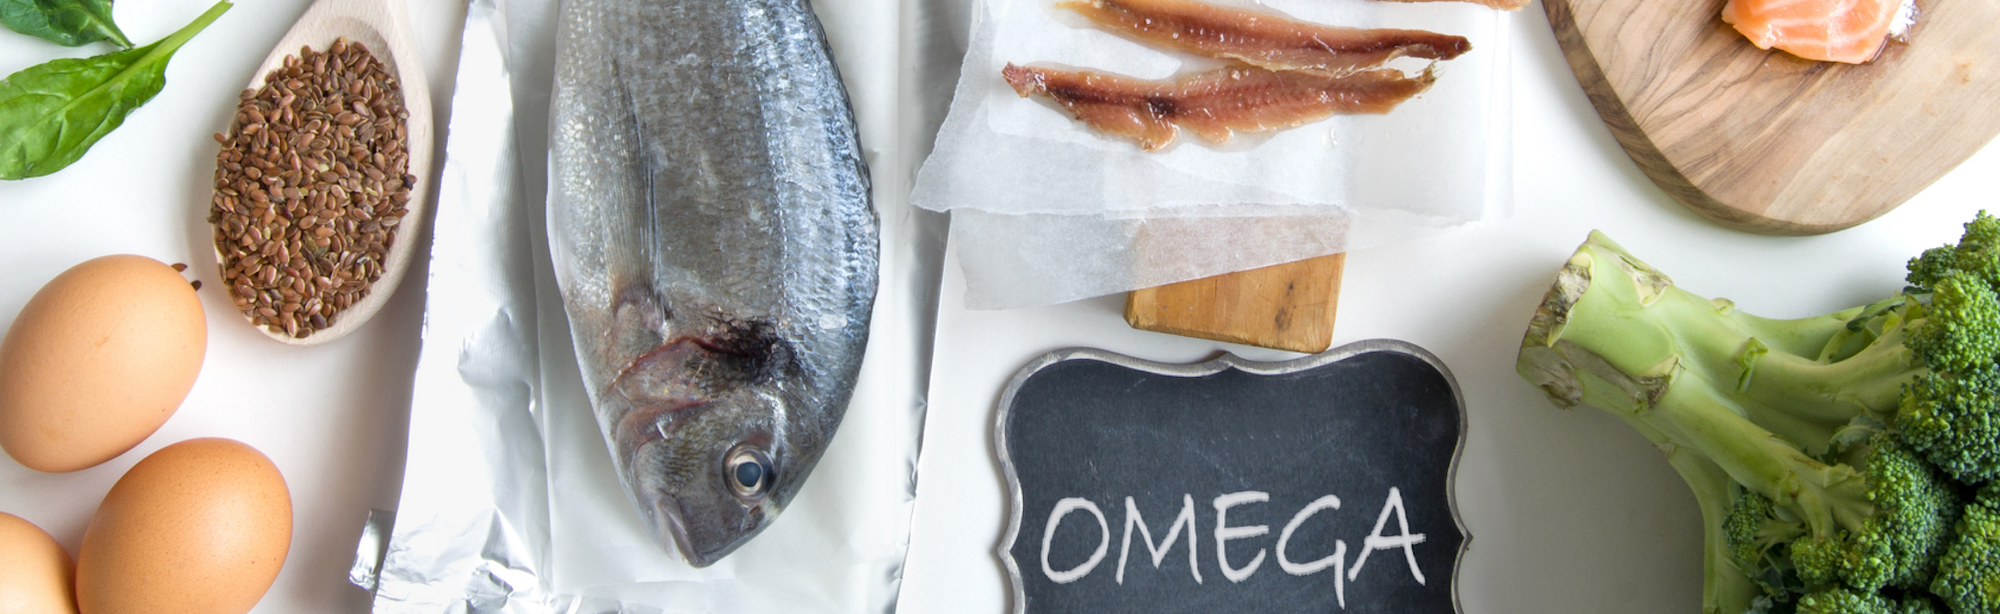 Omega-3's, Fish Oil, Inflammation, and Your Health